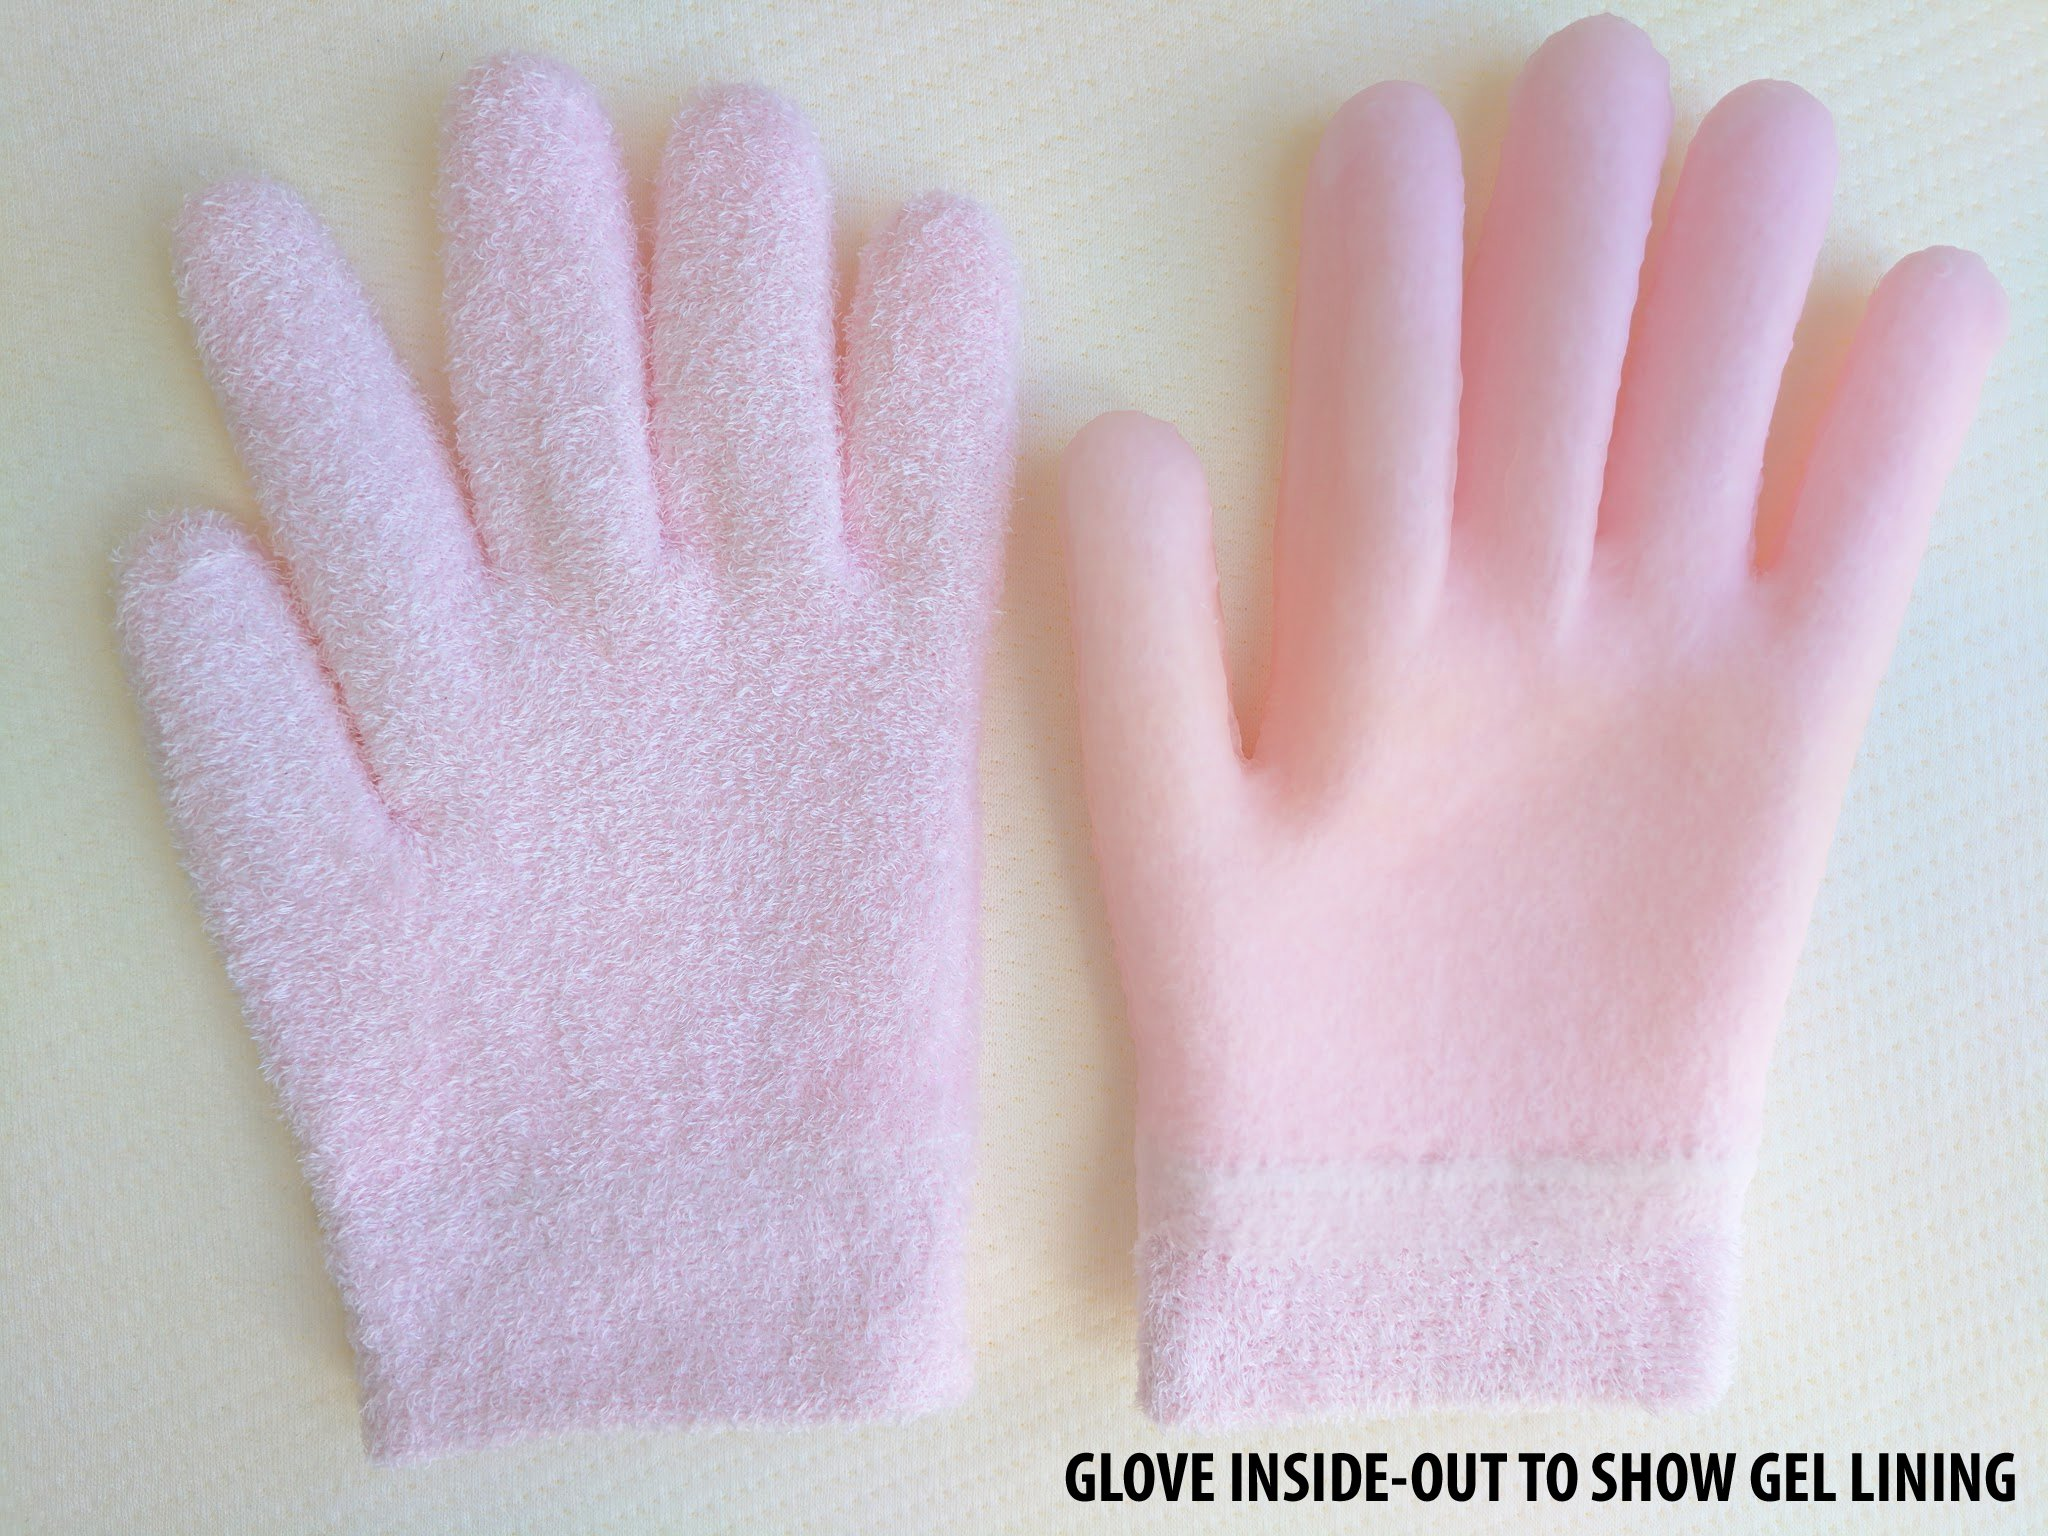 NatraCure Gel Moisturizing Gloves - (Lavender Scent) by NatraCure (Image #5)